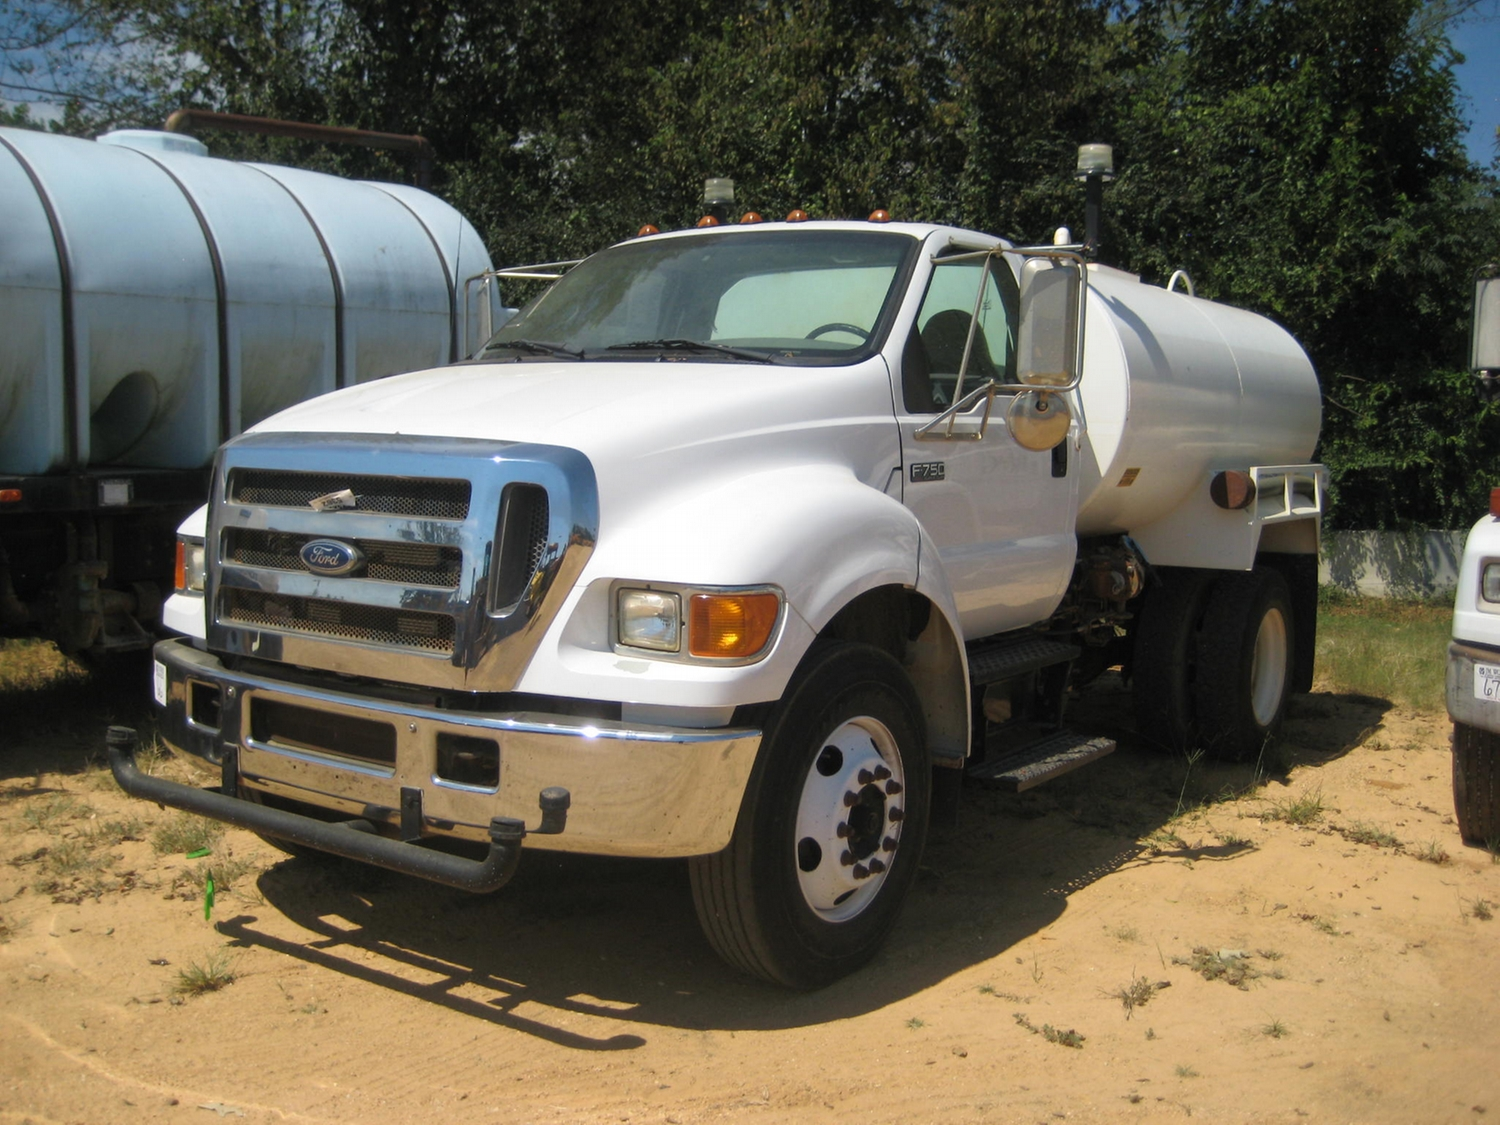 image 1 2005 ford f750 super duty s a water truck  [ 1500 x 1125 Pixel ]